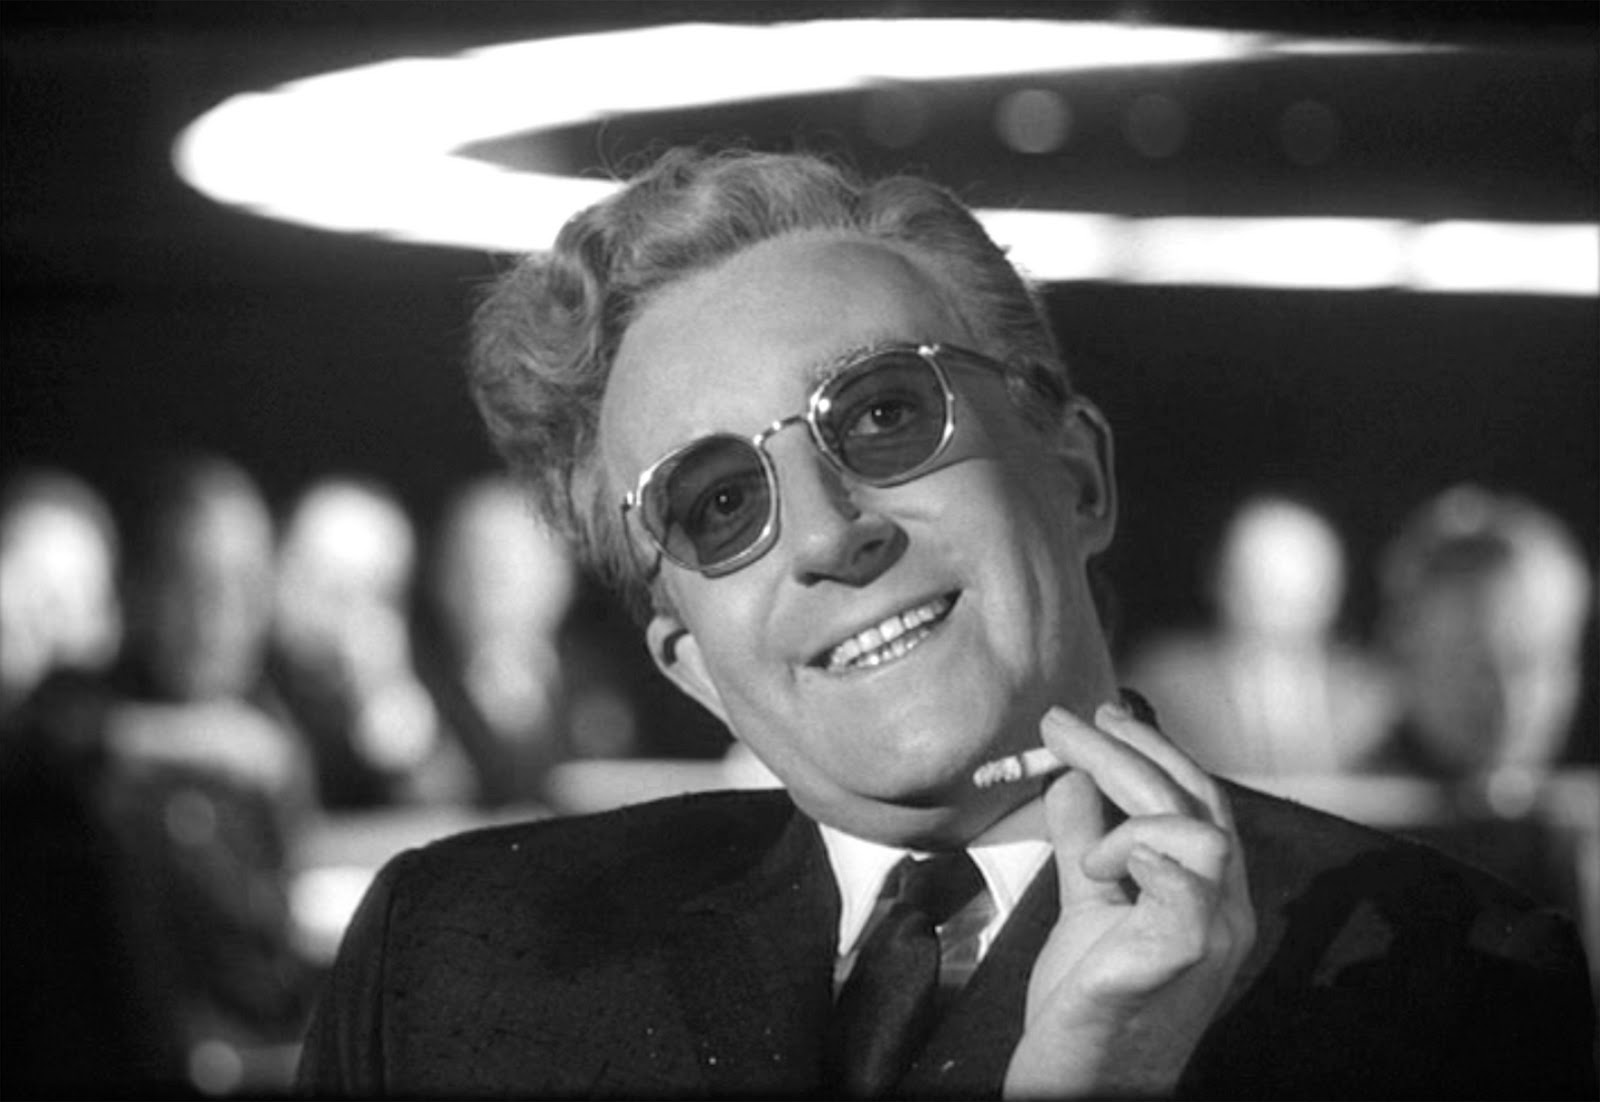 A still from Dr. Strangelove, directed by Stanley Kubrick